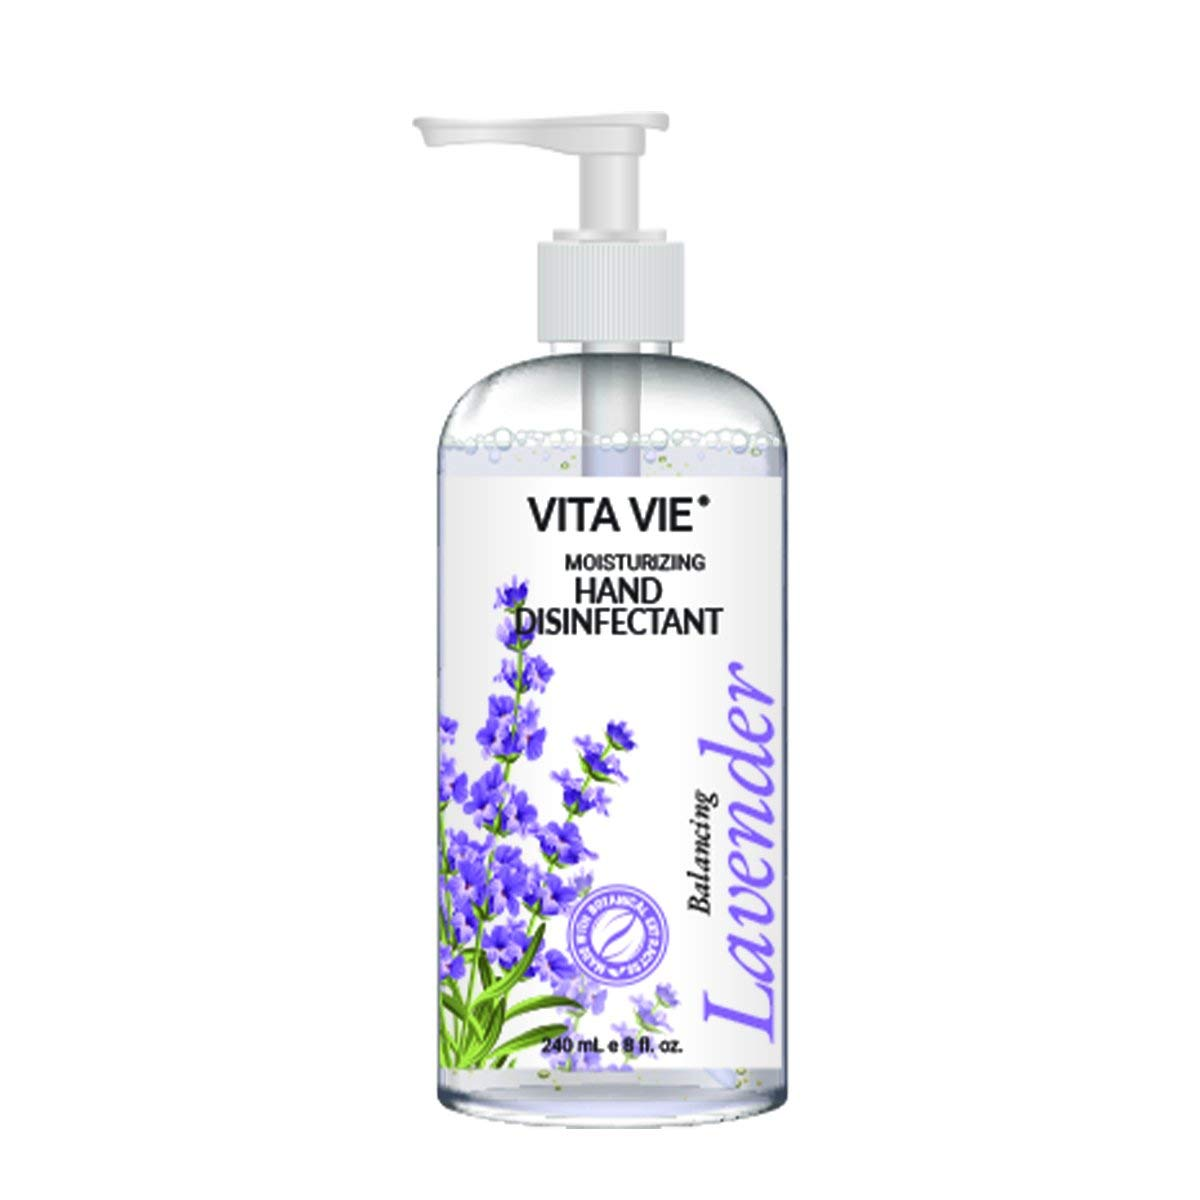 Vita Vie Moisturizing Hand Disinfectant, 8 oz Lavender Scented Hand Sanitizer with Pump - No-Soap, Rinse-free Hand Cleaner - Safe & Organic Ingredients